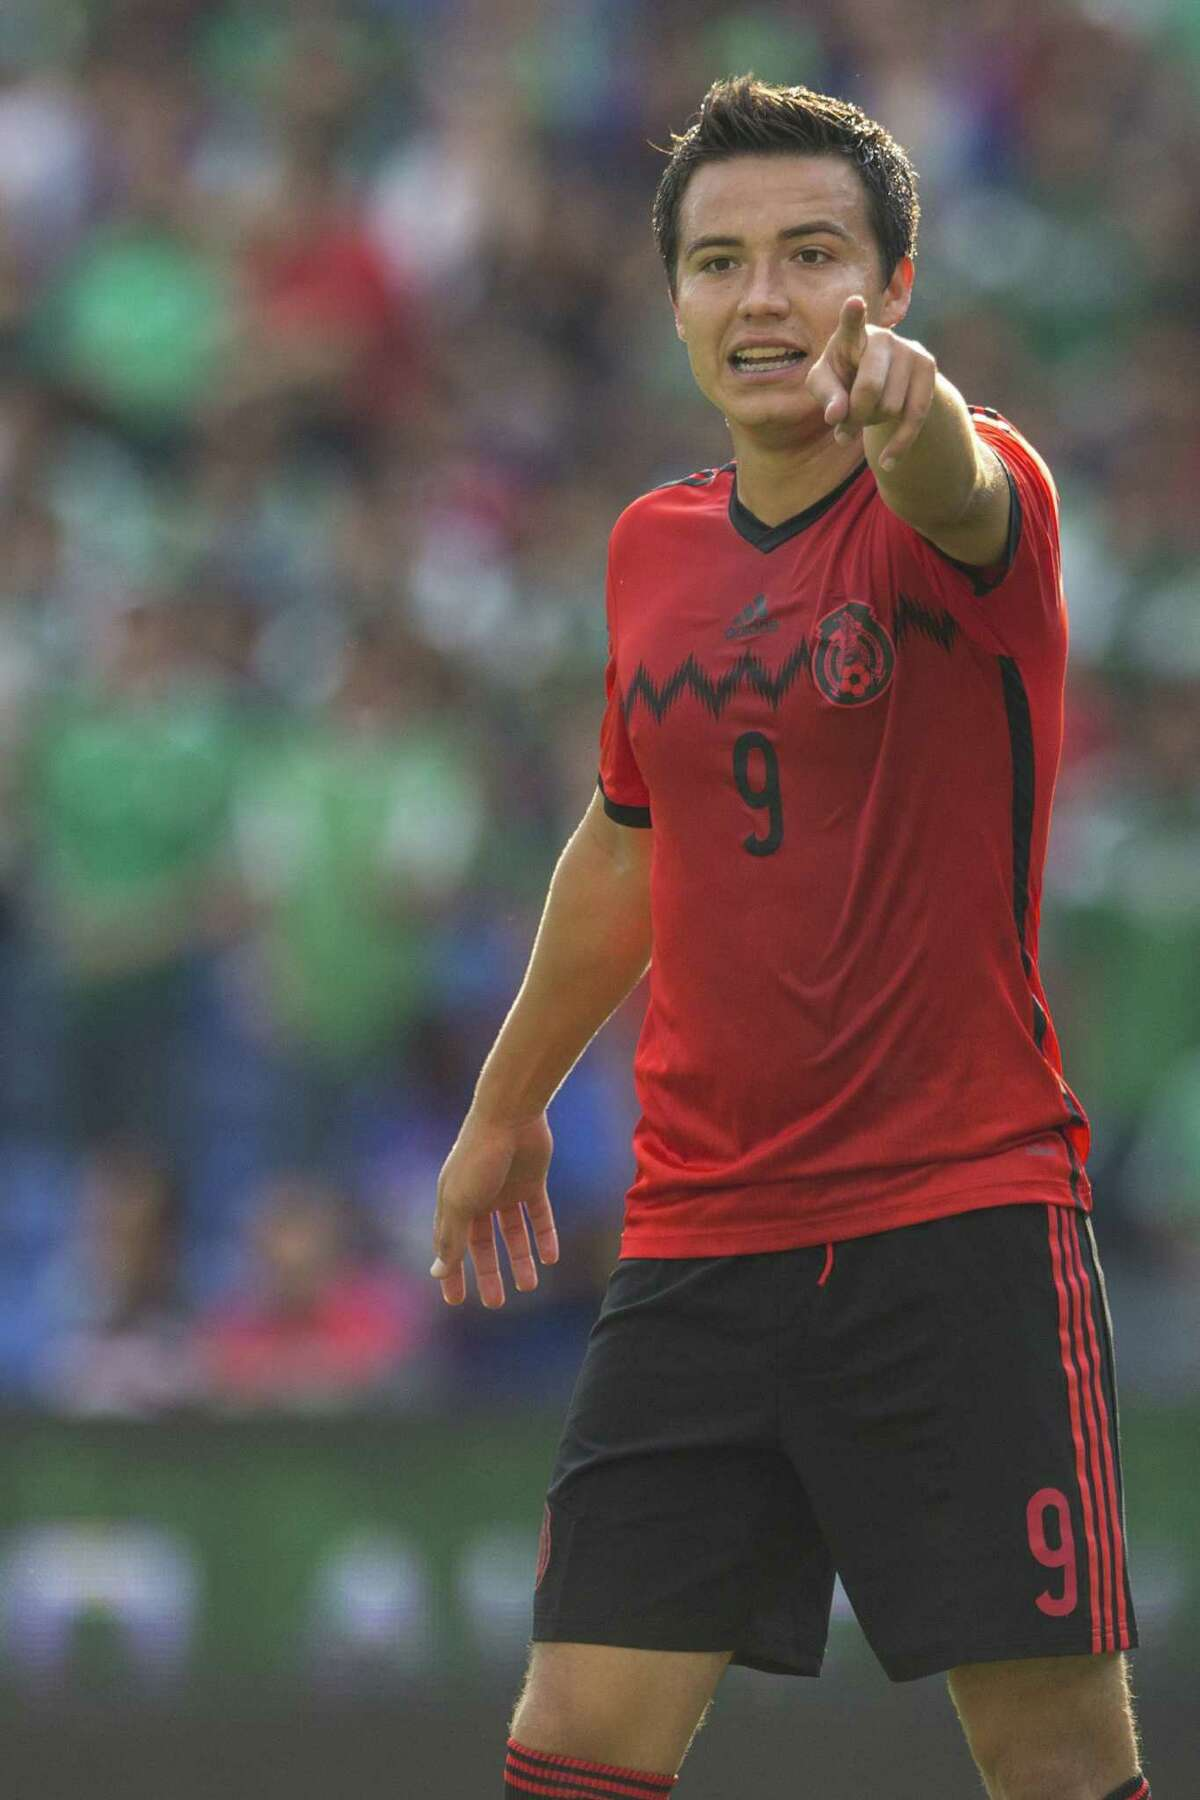 QUERETARO, MEXICO - OCTOBER 12: Erick Torres of Mexico reacts during a friendly match between Mexico and Panama at Corregidora Stadium on October 12, 2014 in Queretaro, Mexico. (Photo by Miguel Tovar/LatinContent/Getty Images)